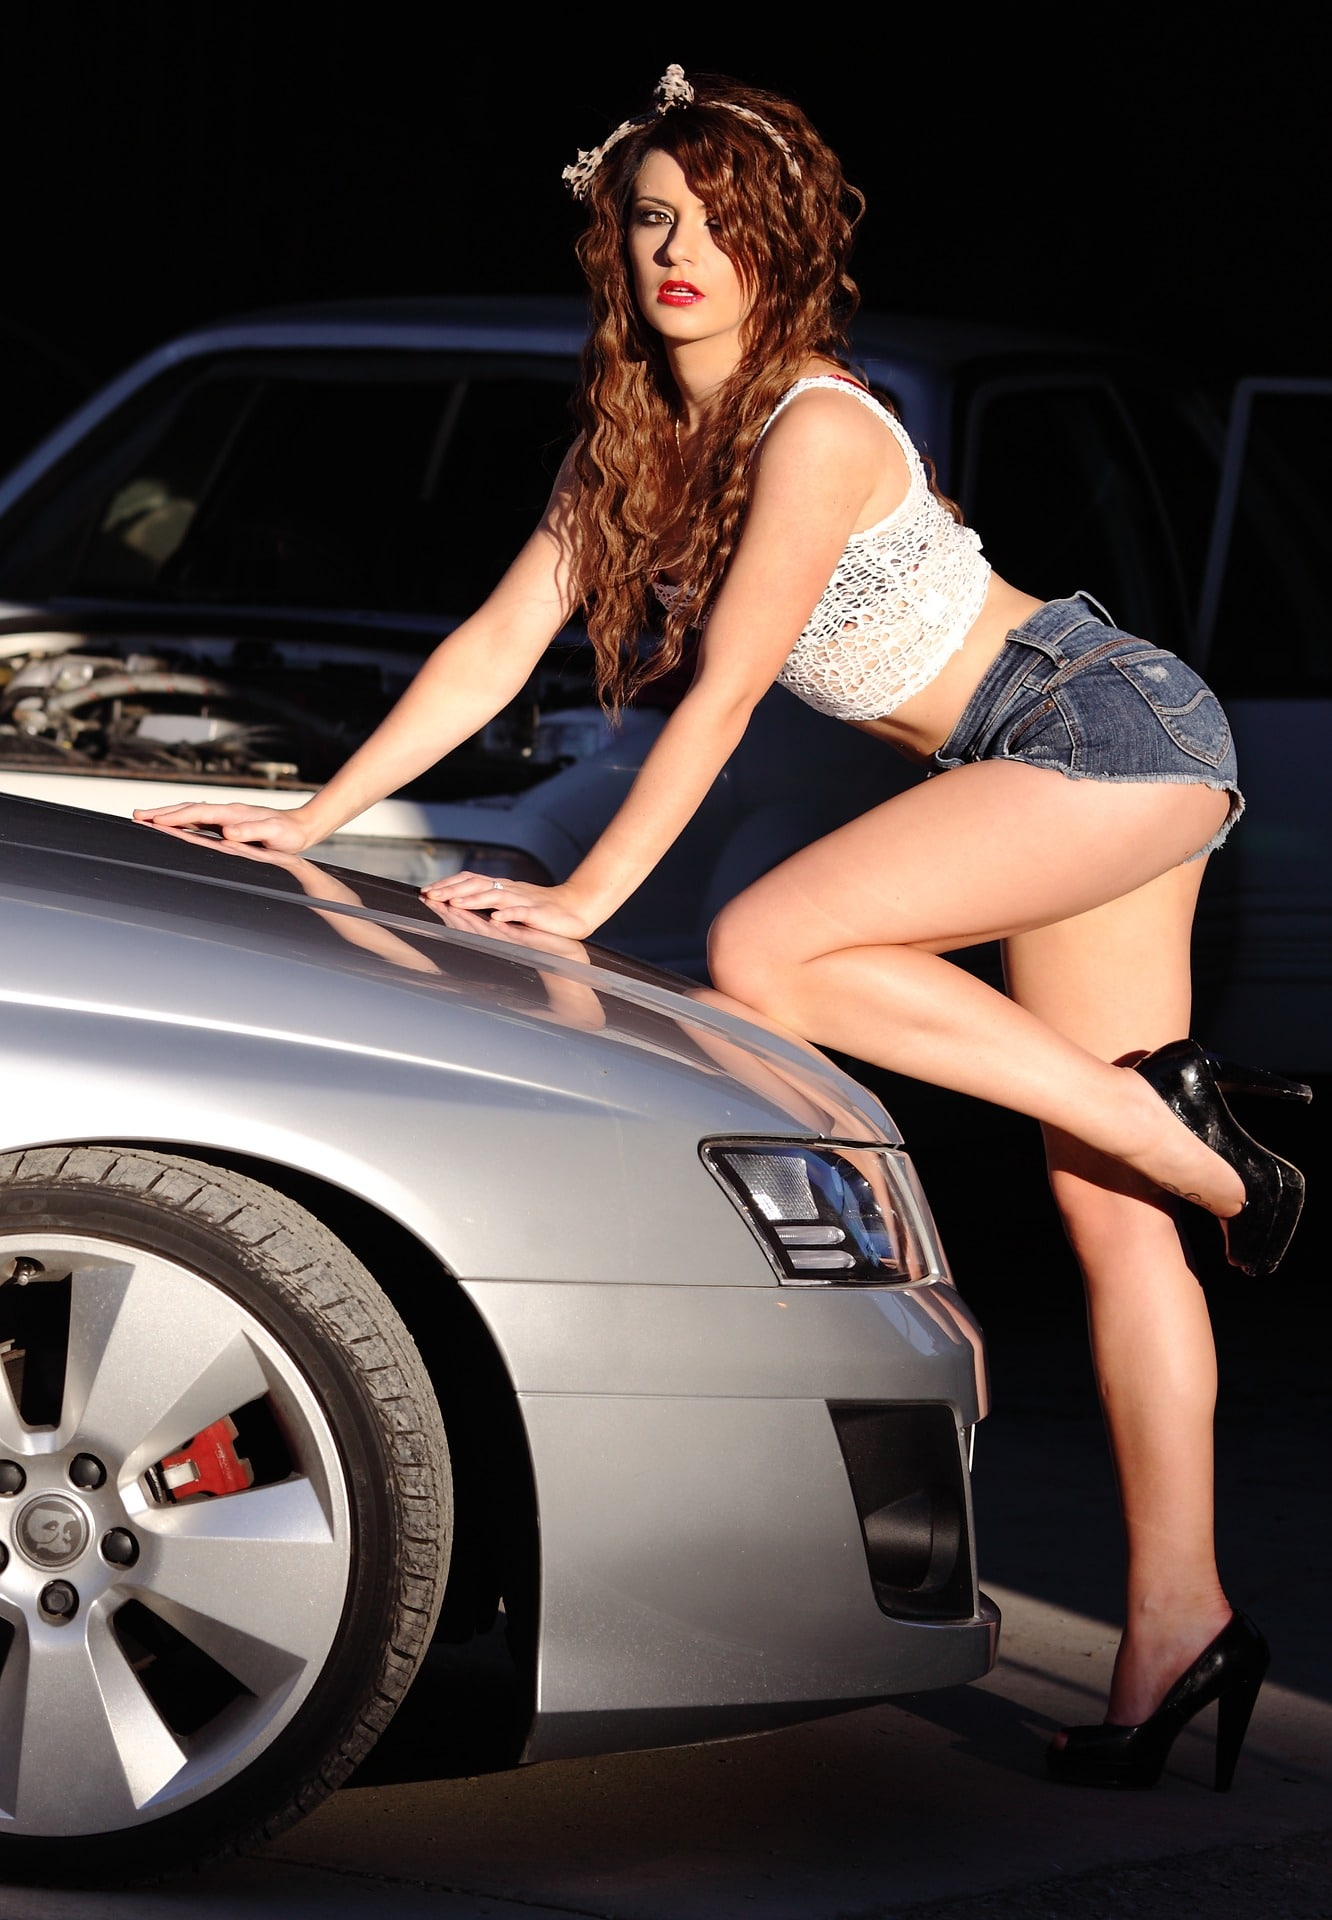 Beautiful woman in heels wearing a white top and short denim shorts in front of a car showing her long sexy legs